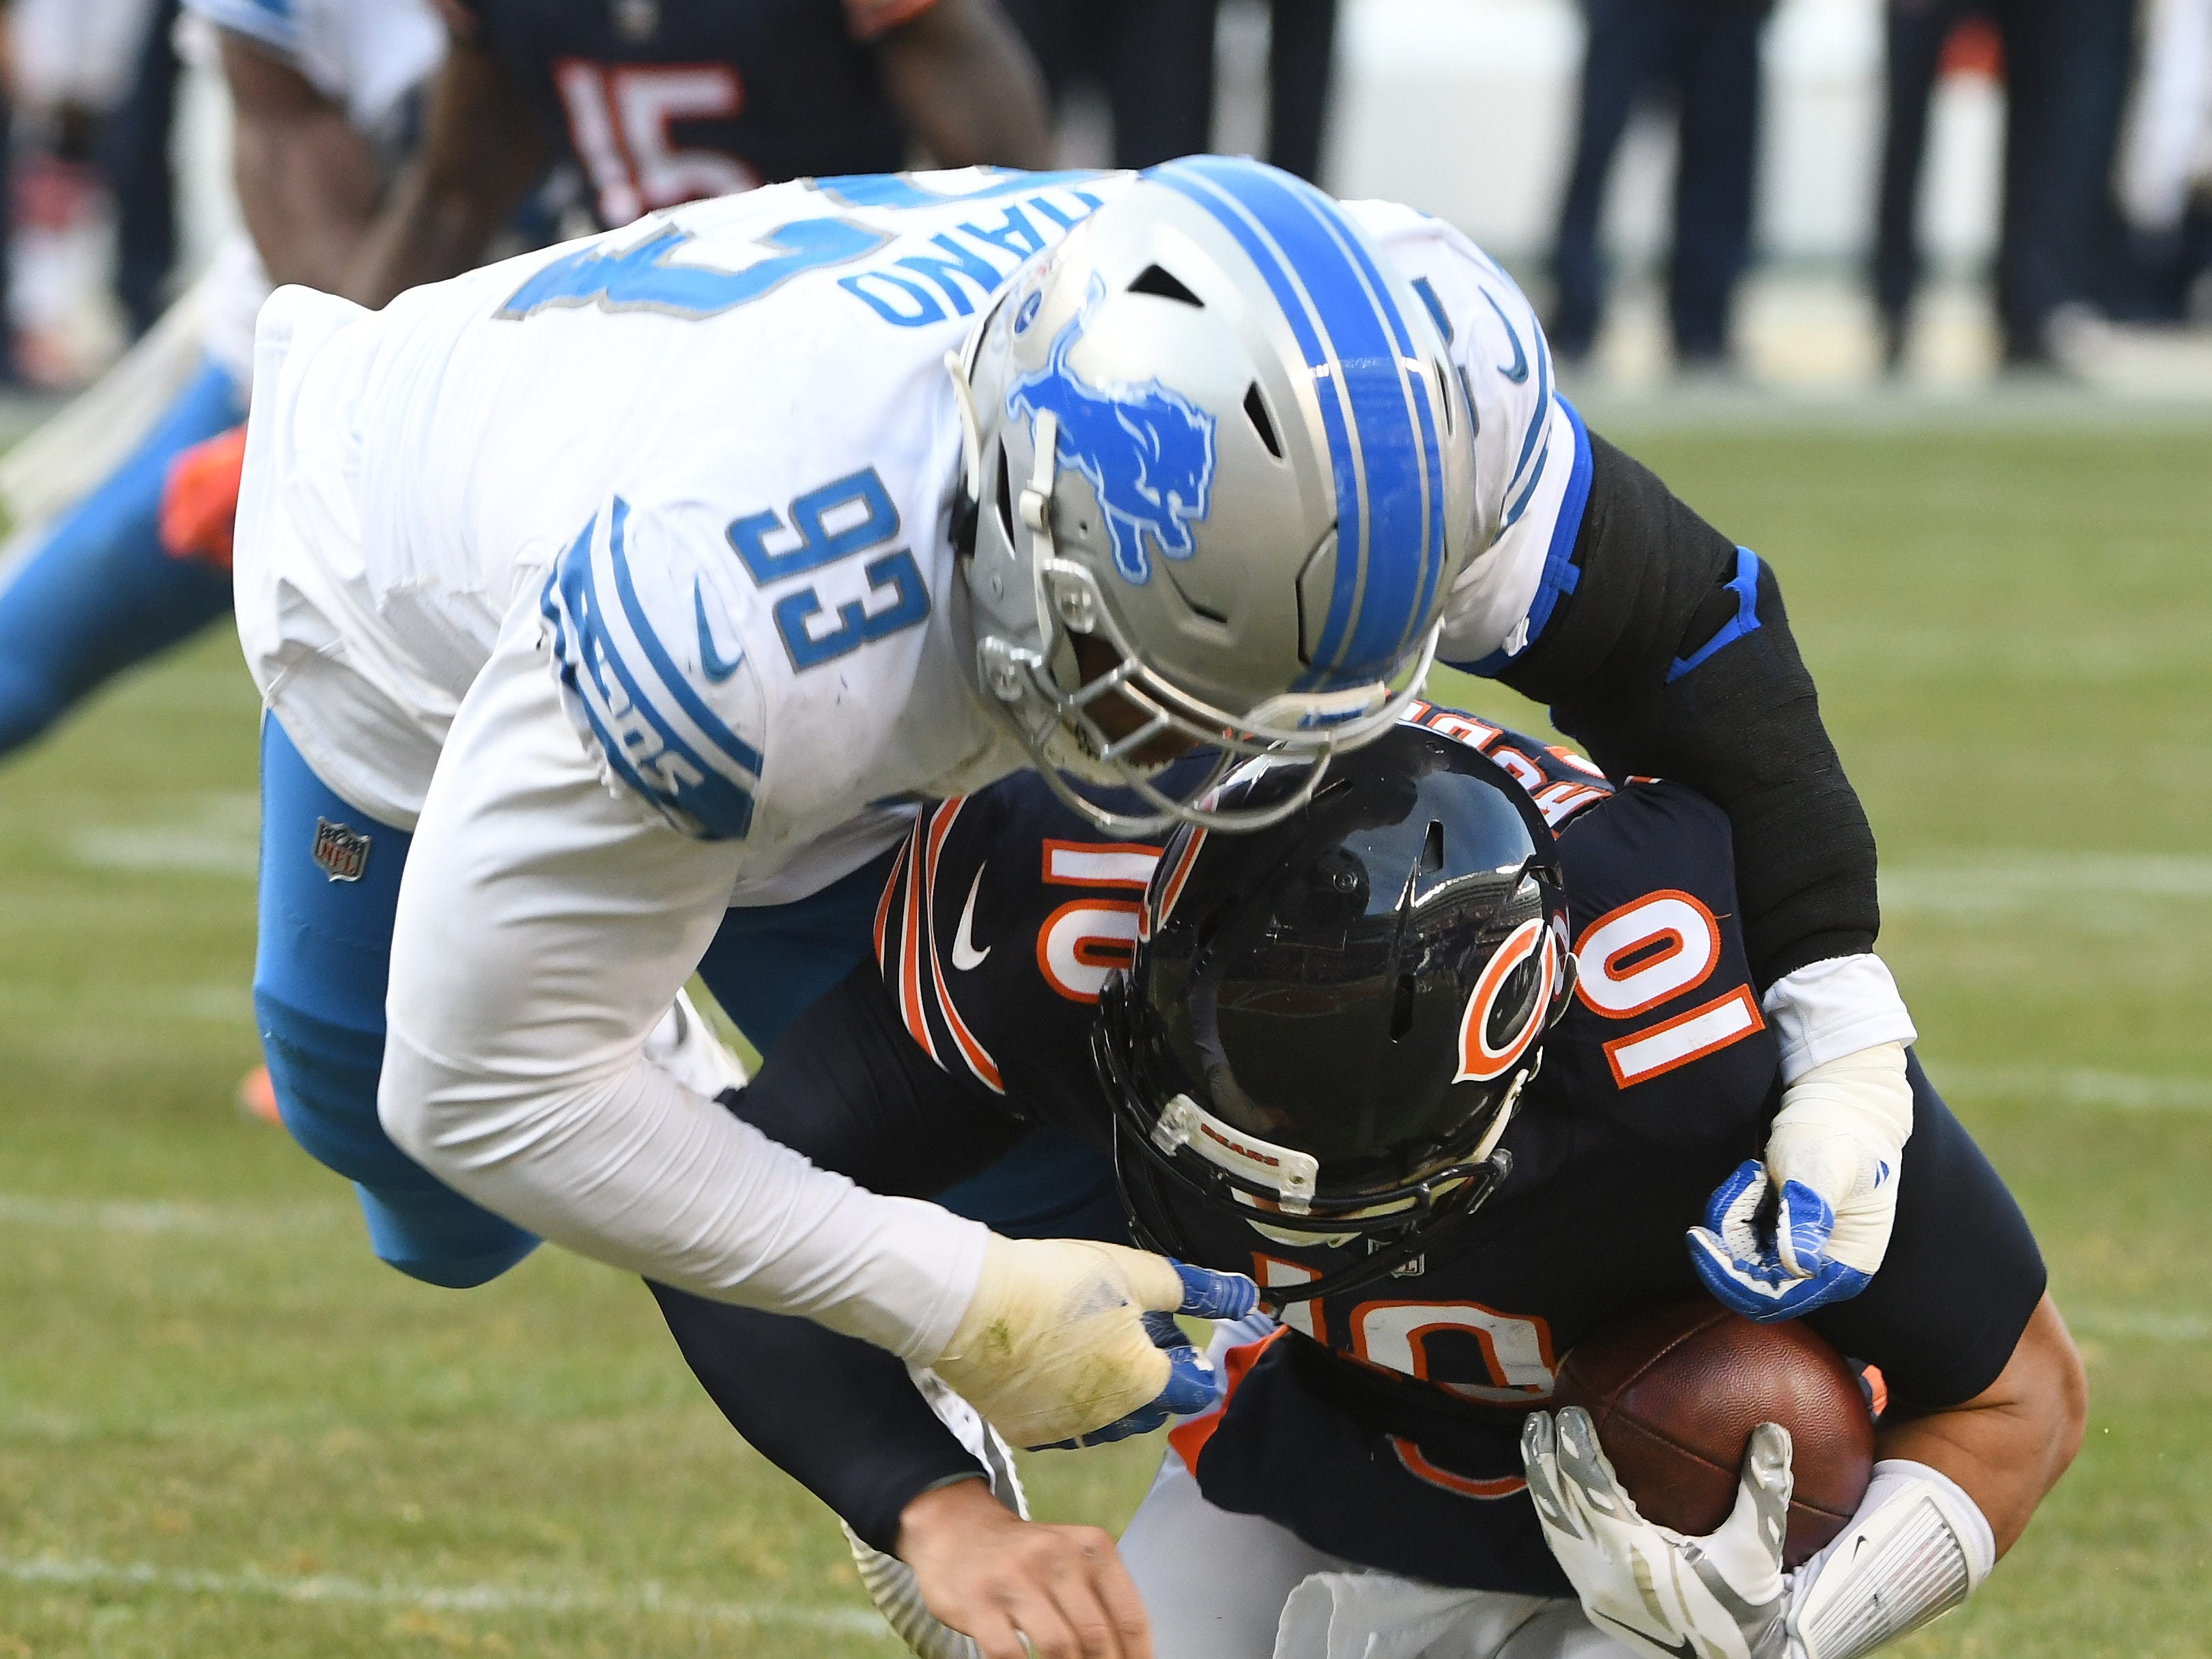 Lions' Da'Shawn Hand sacks Bears quarterback Mitchell Trubisky just short of the end zone, placing the ball at the one yard line after an officials review in the fourth quarter.